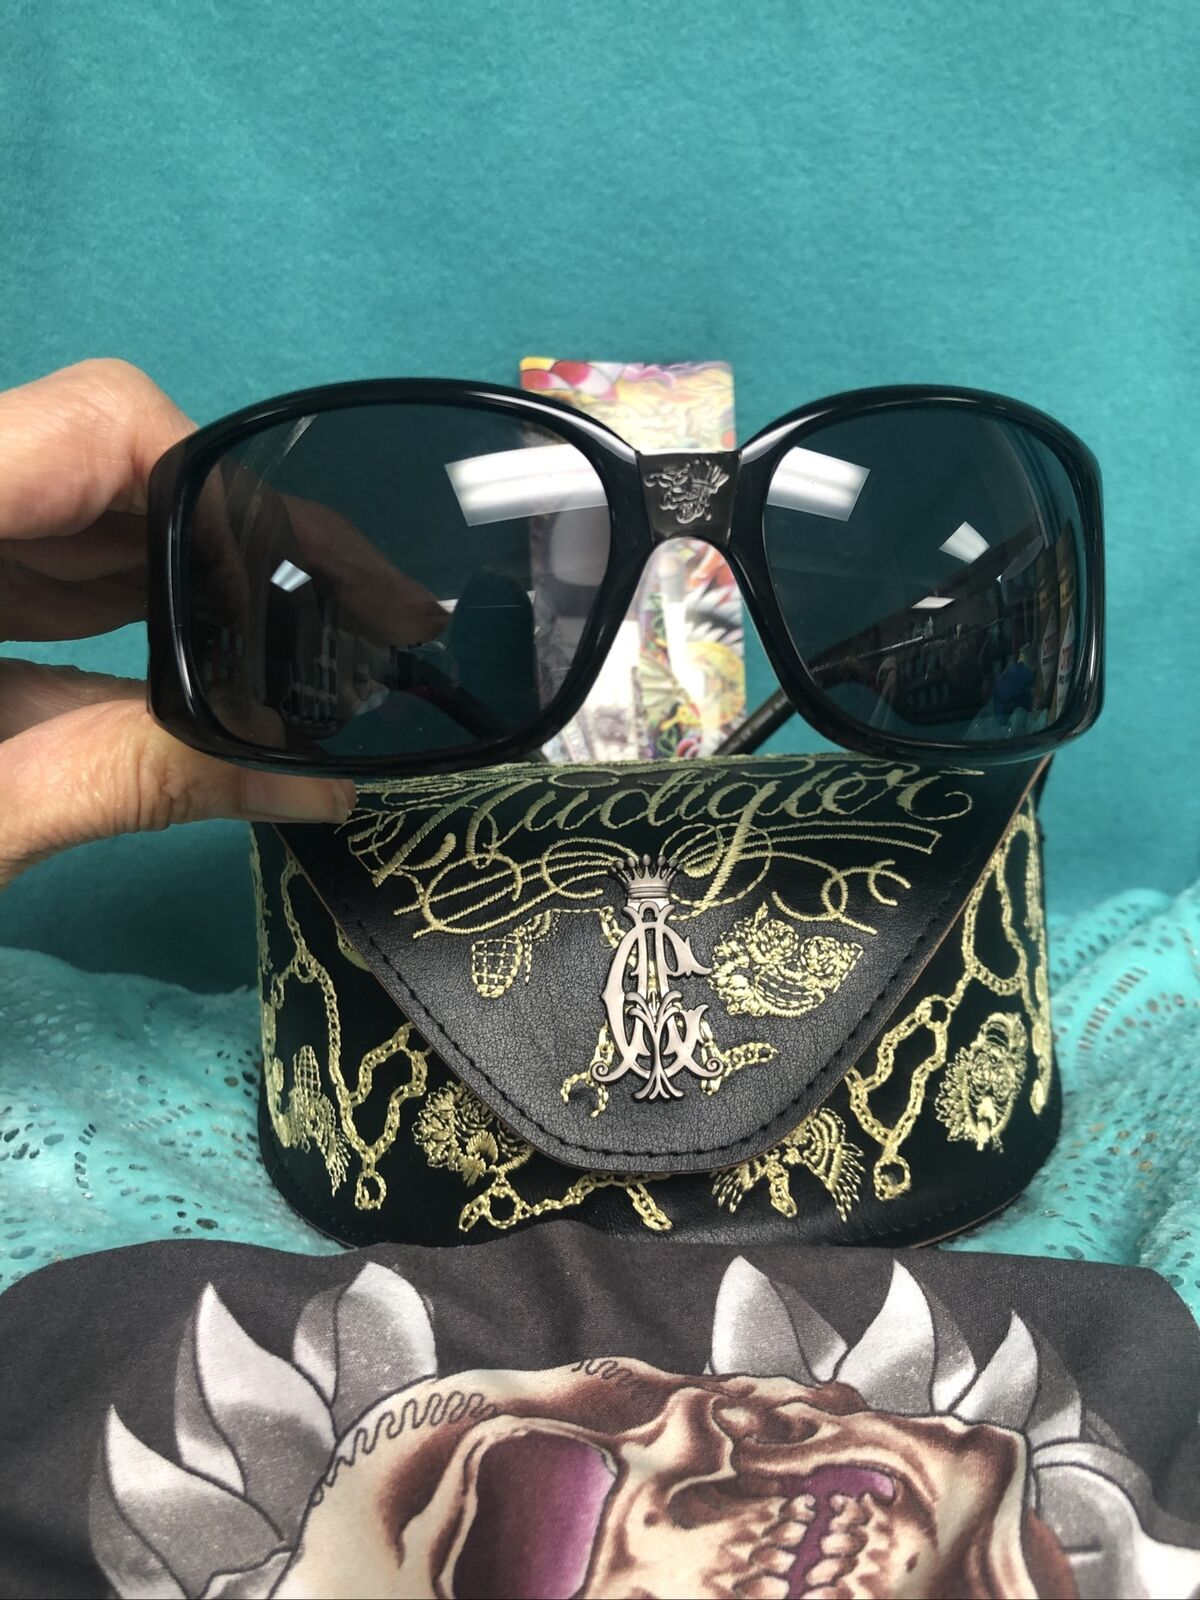 100% AUTHENTIC Ed Hardy by Christian Audigier Black Sunglasses New